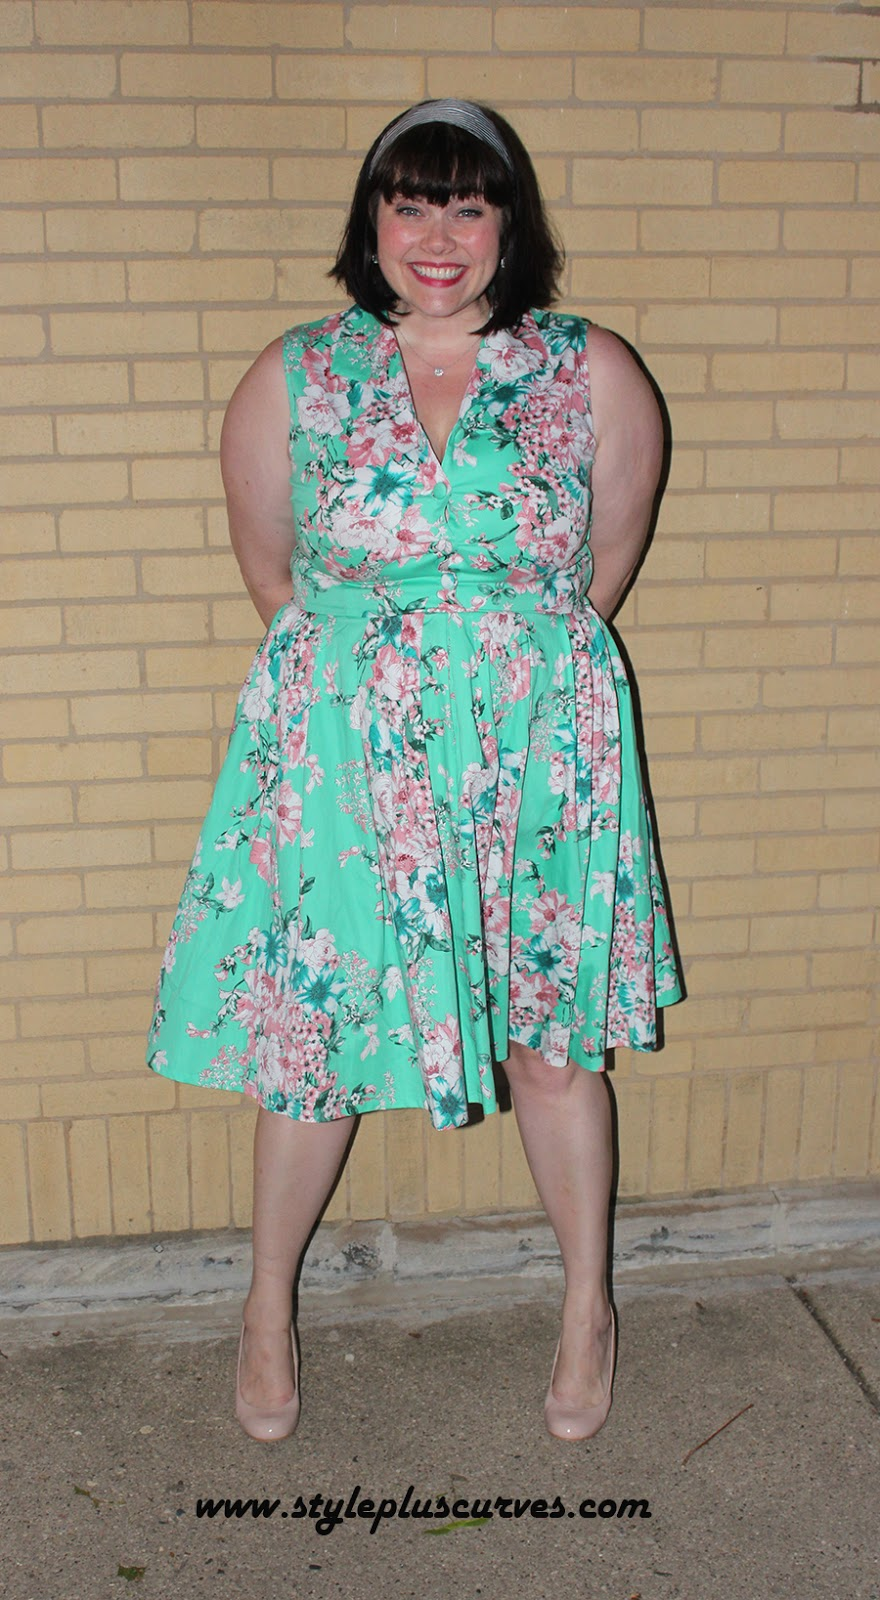 Voodoo Vixen Plus Size Vintage Dress in Minty Green Floral on Amber from Style Plus Curves